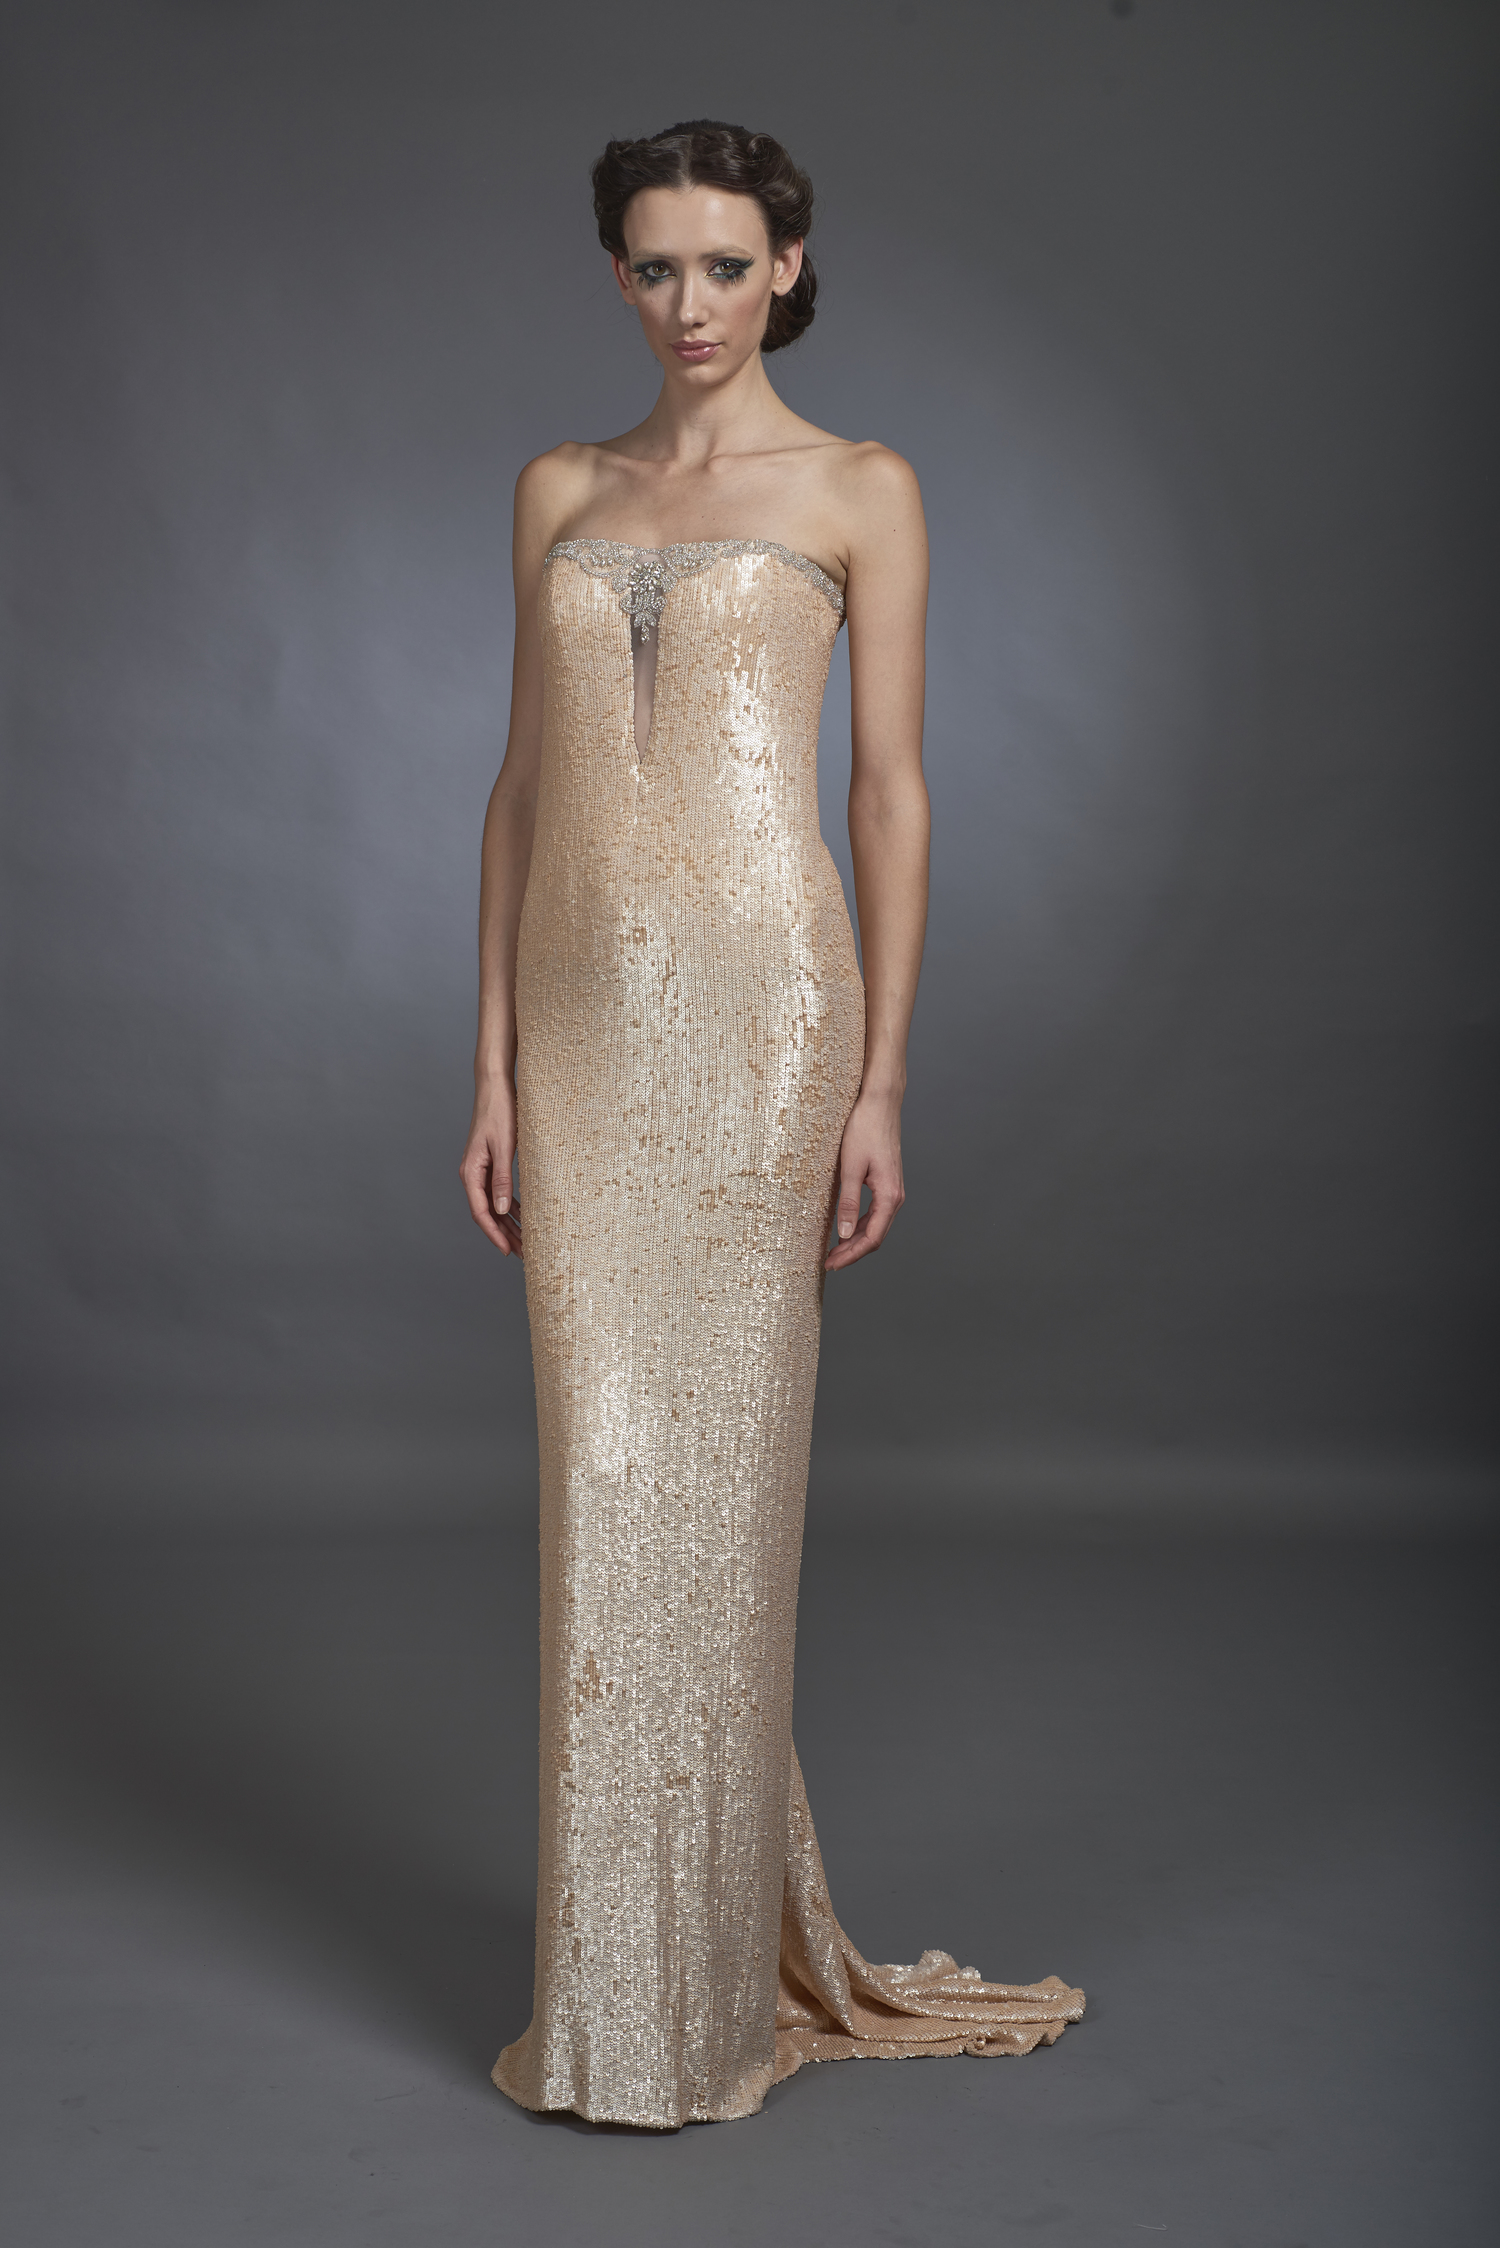 Strapless Flesh Tone Sequined Gown with Beaded Detail — Globa Moda